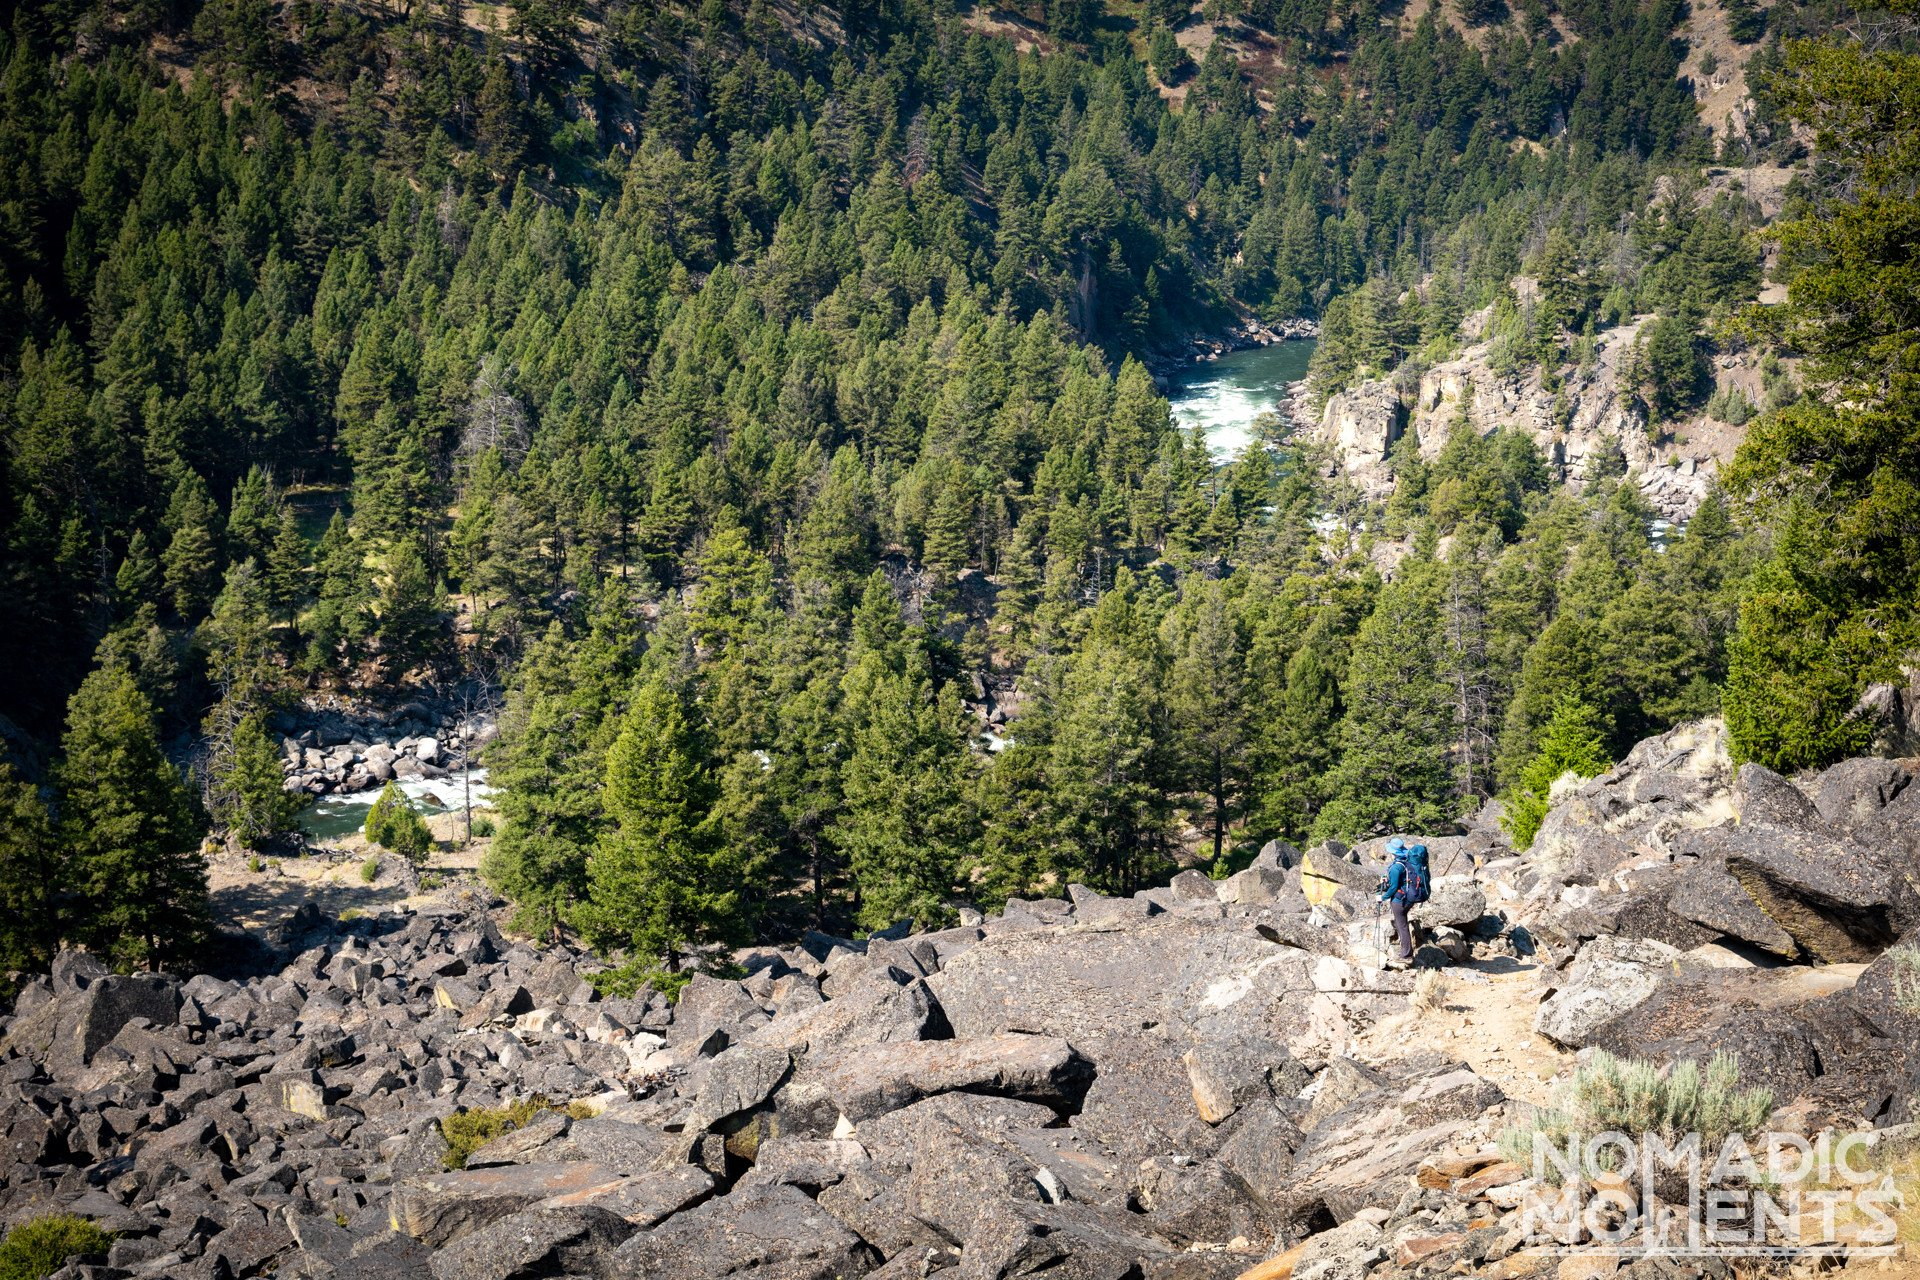 Hiking the Black Canyon of the Yellowstone River Trail